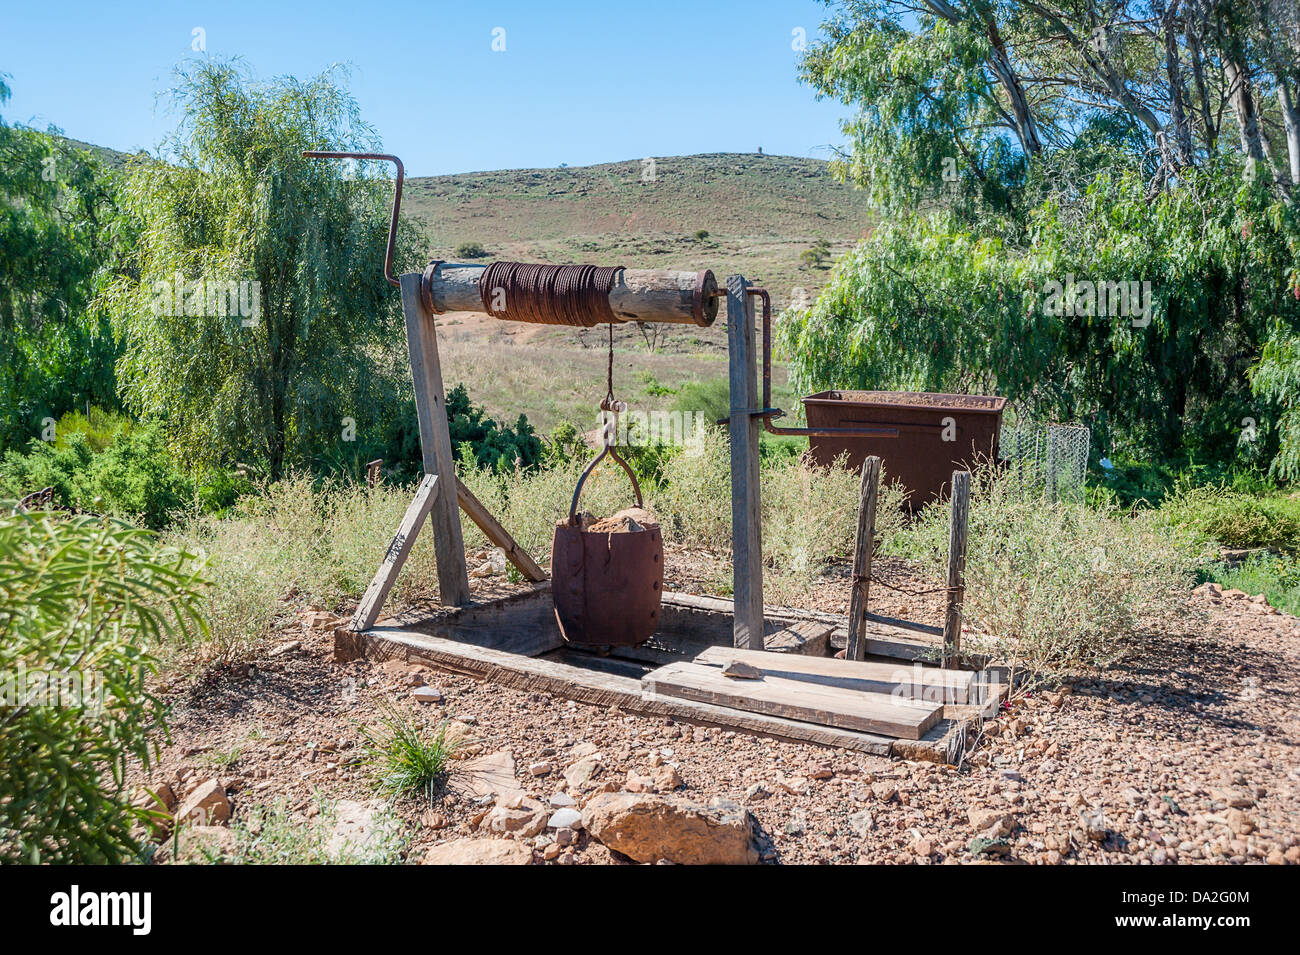 An old mine shaft in the town of Blinman near the ruggedly beautiful Flinders Ranges in the Australian outback. Stock Photo